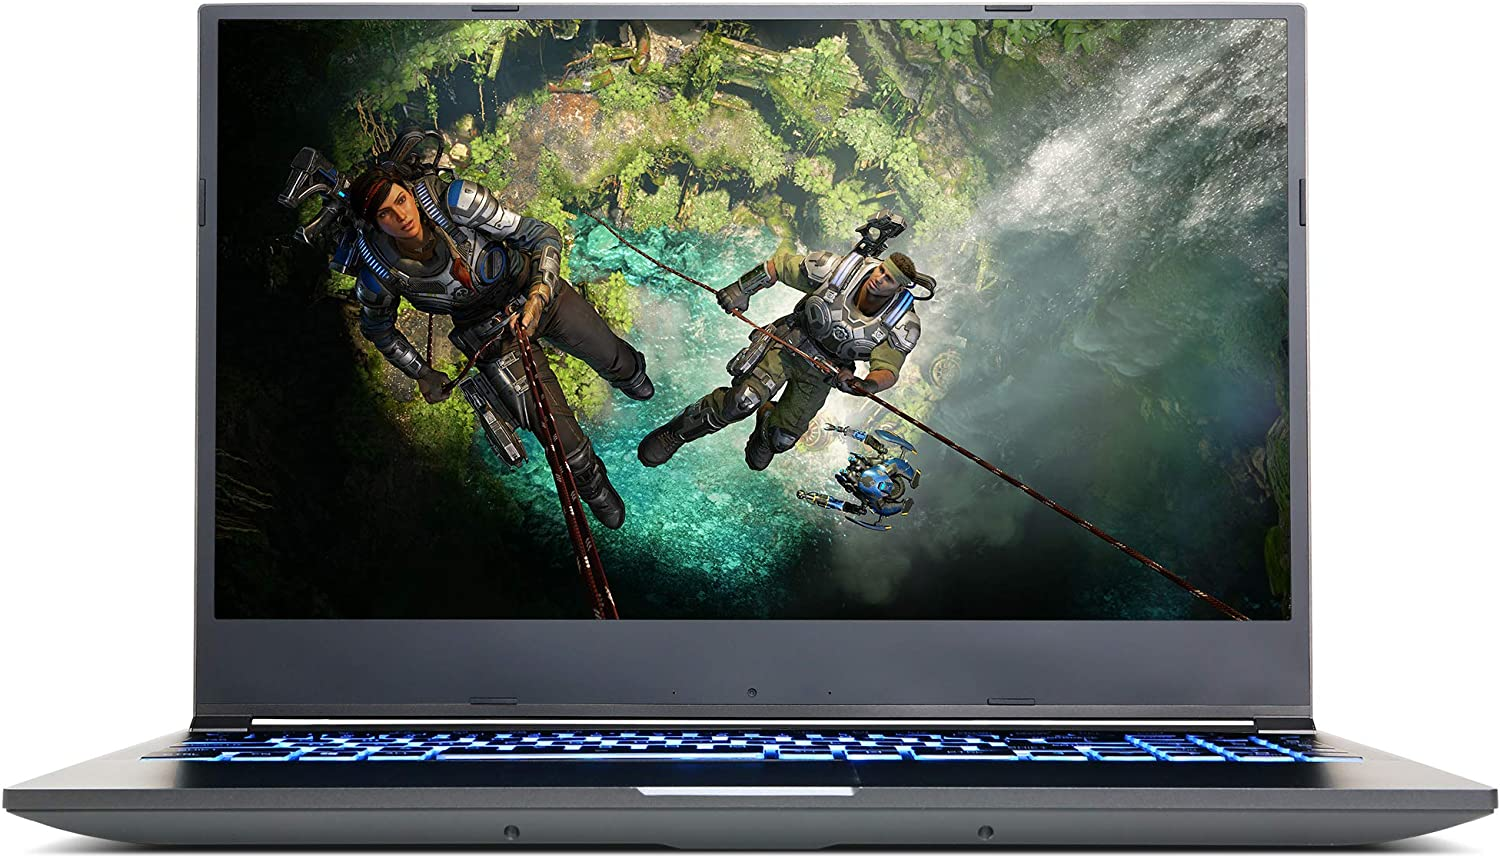 "CyberpowerPC Tracer IV Slim 15.6"" Gaming Notebook, Intel i7-10750H 2.6GHz, GeForce RTX 2060 6GB, 16GB DDR4, 1TB PCI-E NVMe SSD, WiFi, Bluetooth & Win 10 Home (GTS99804)"